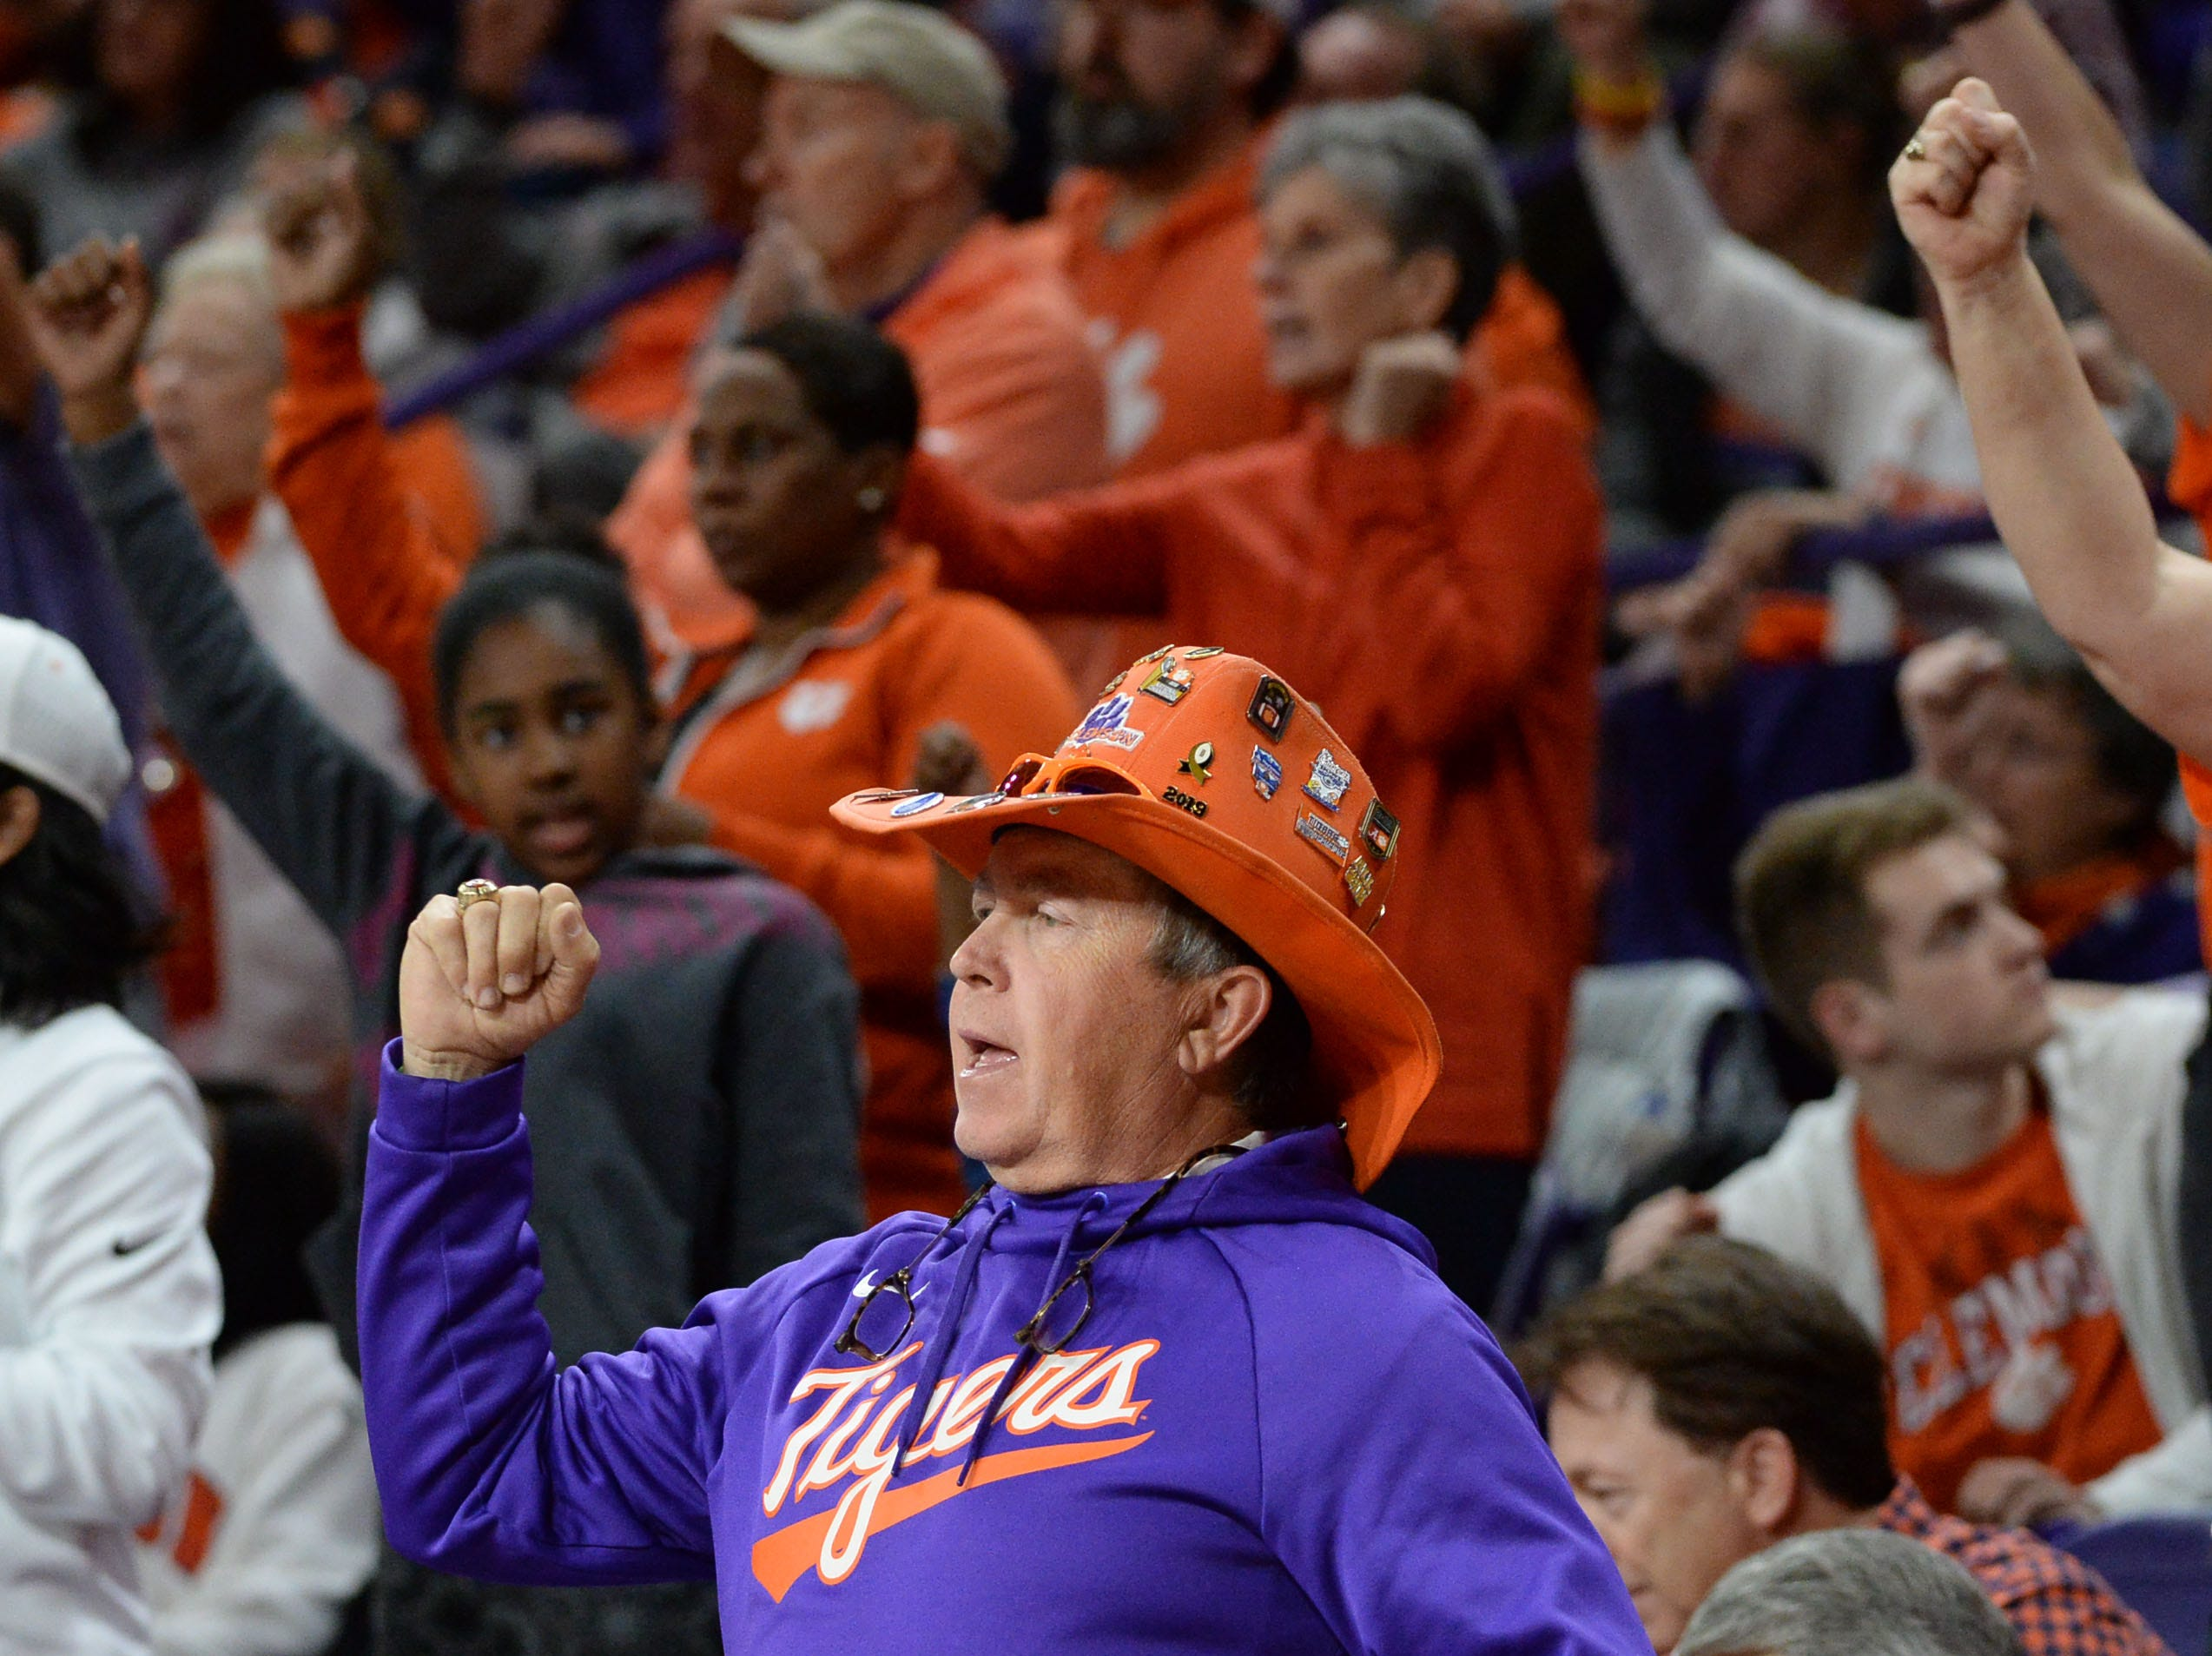 """Dean """"The Hat"""" Cox cheers with Clemson fans during the second half of the NIT with Wright State at Littlejohn Coliseum in Clemson Tuesday, March 19, 2019."""